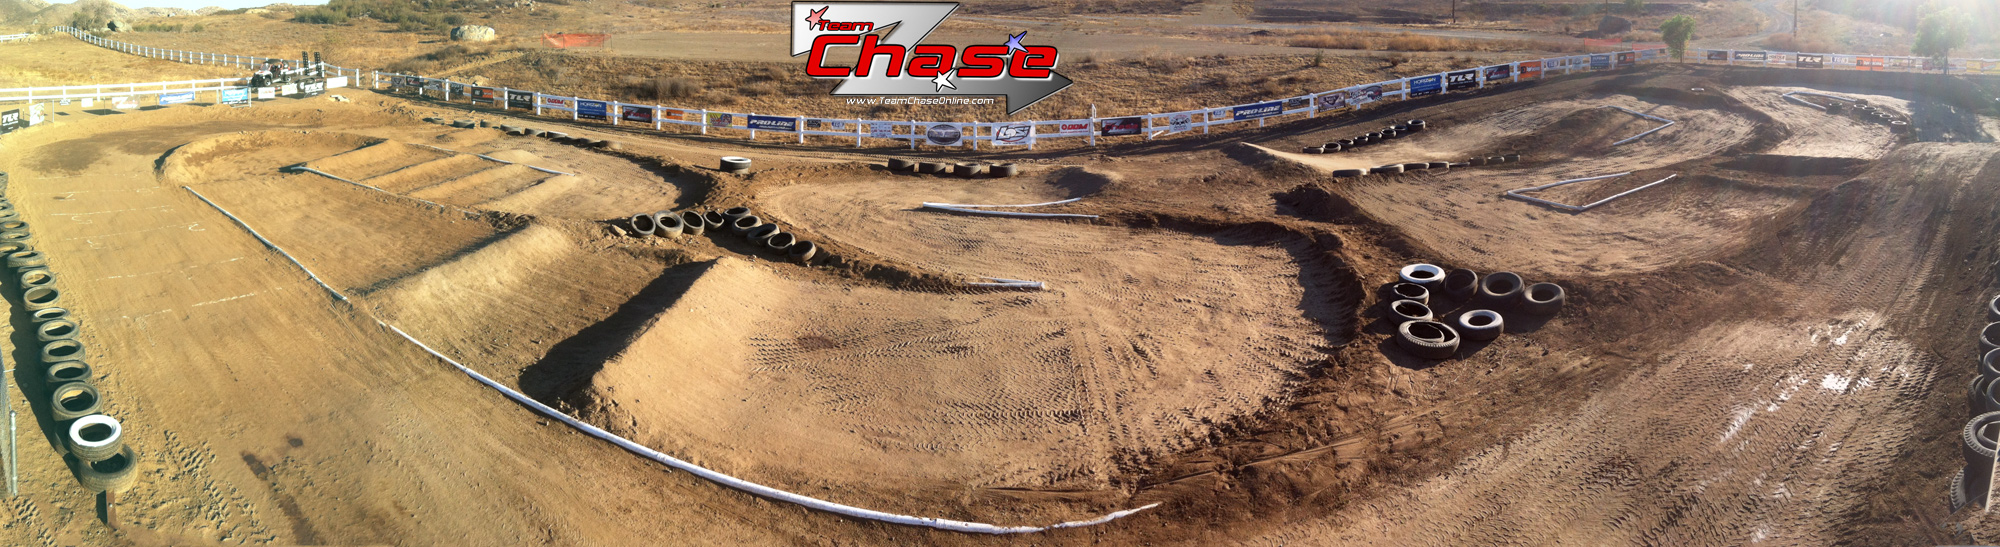 large scale teamchase track